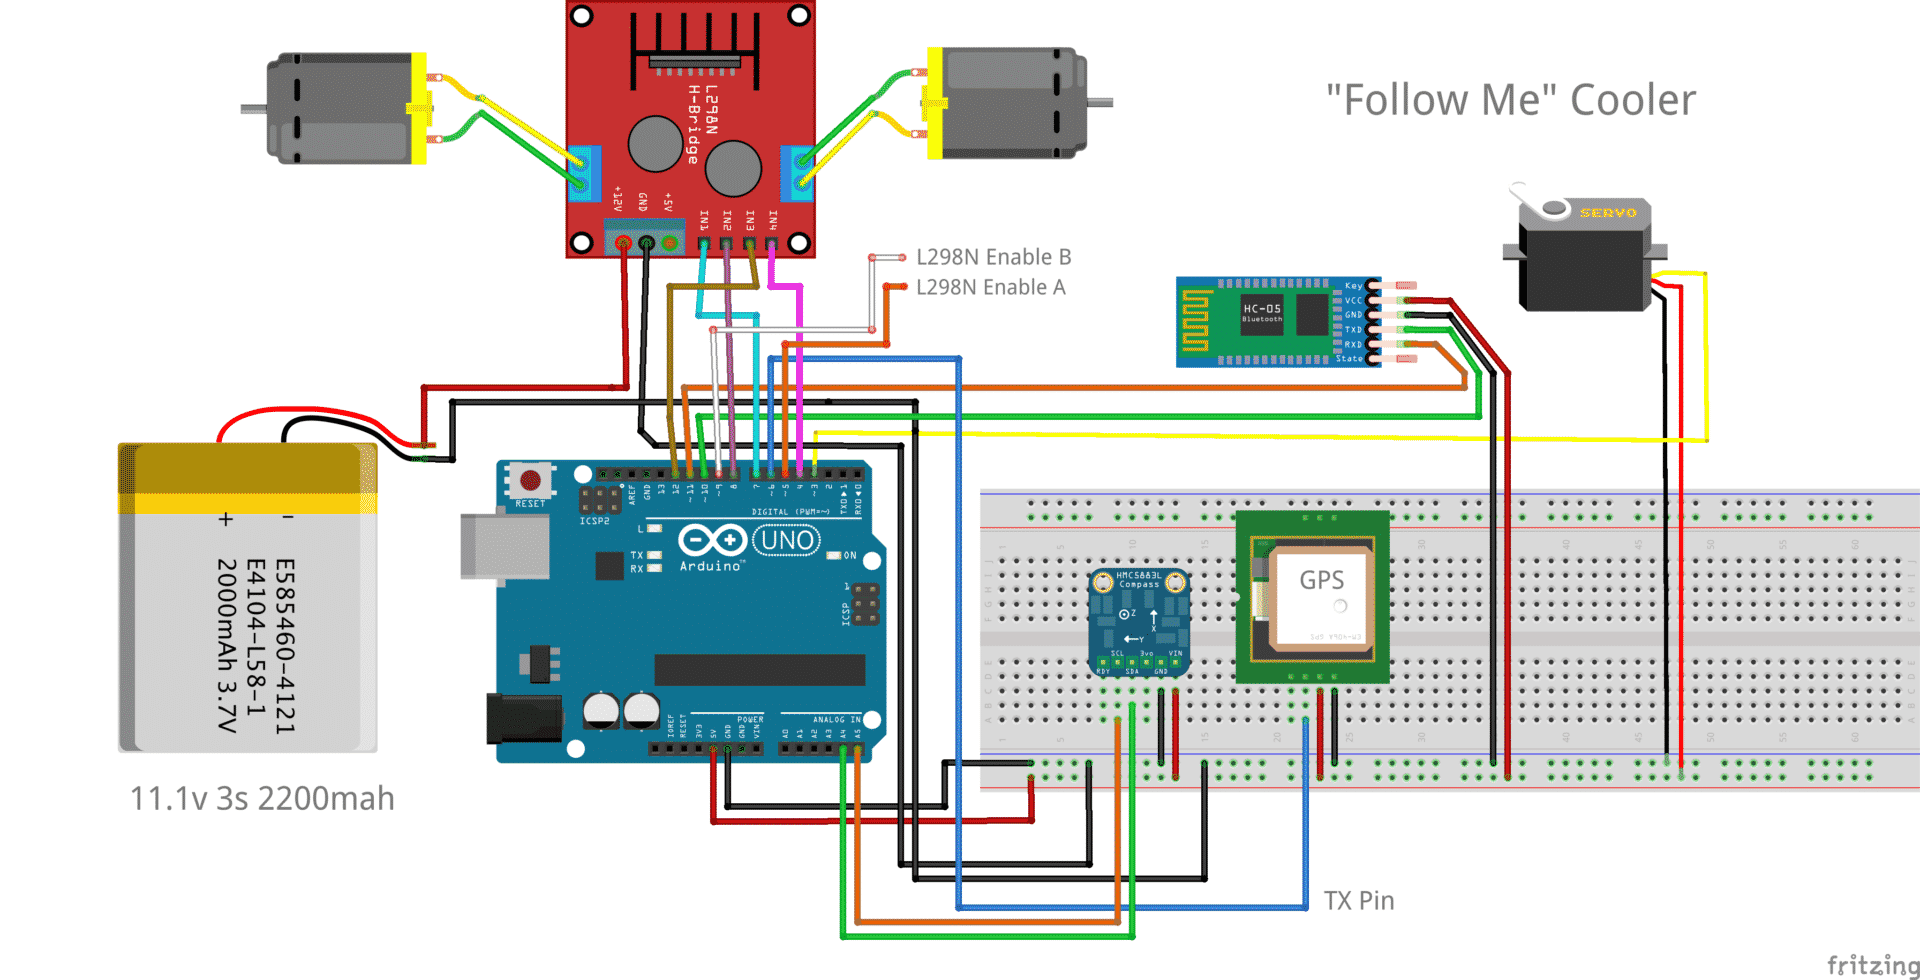 Use Arduino To Build Autonomous Cooler Controlled By